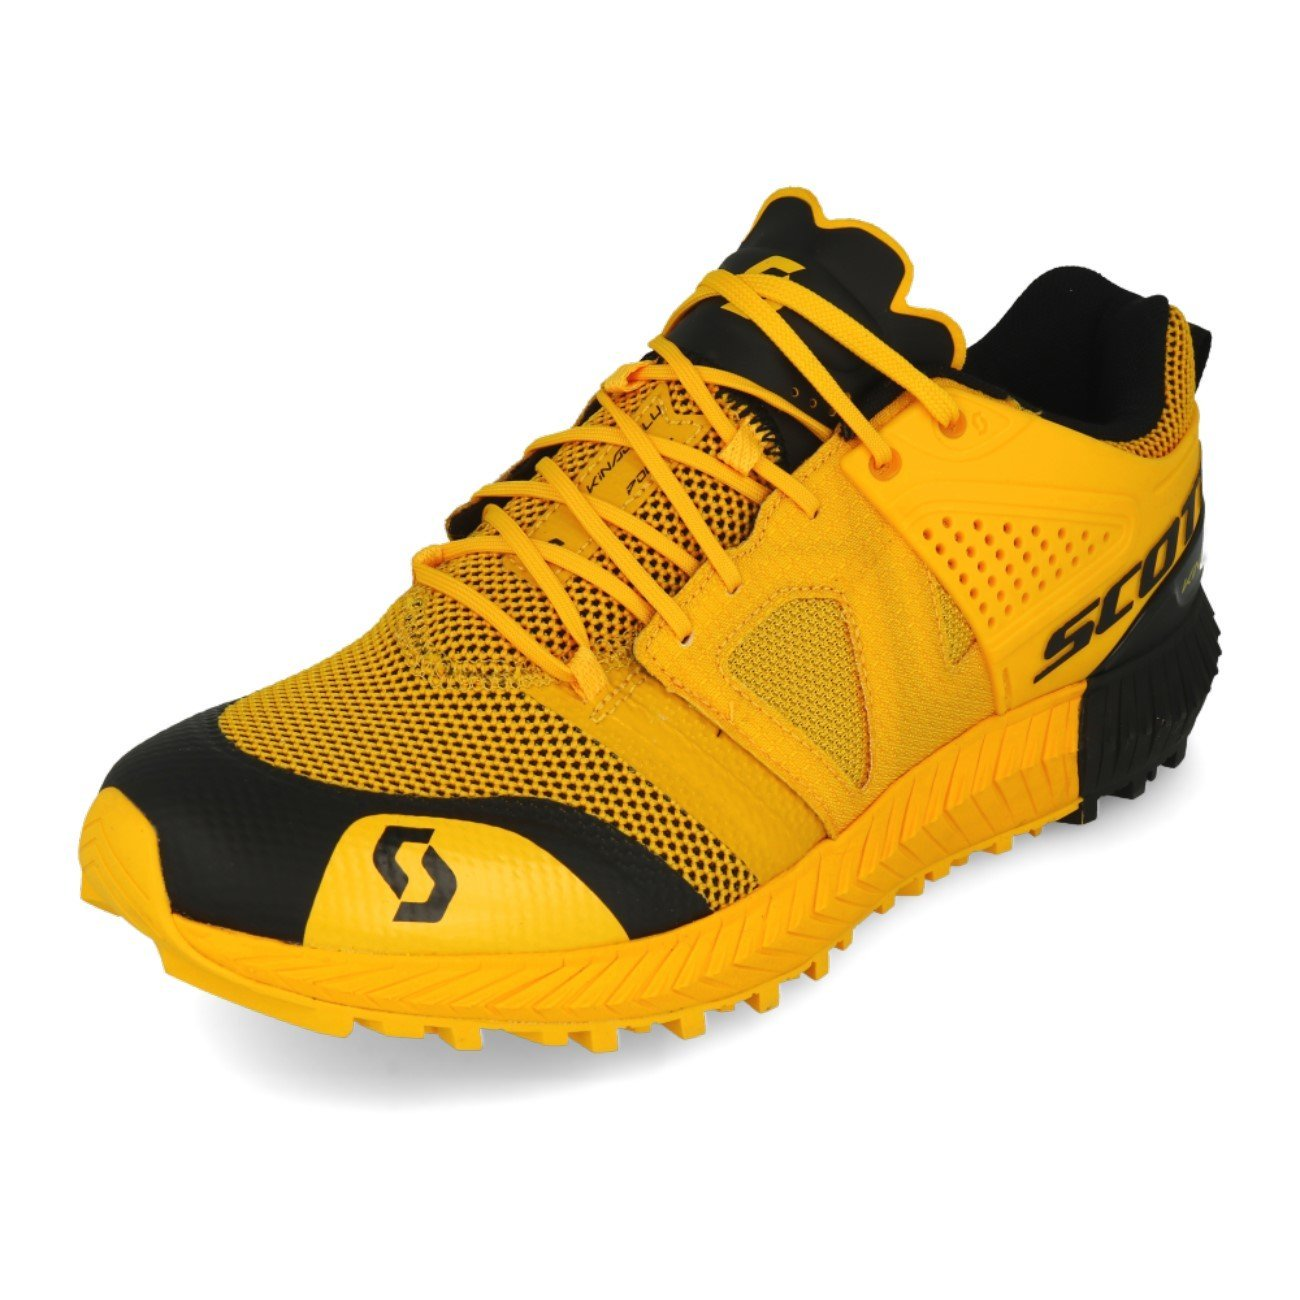 Scott - Zapatillas de Running de Tela, sintético para Hombre Amarillo Yellow Black, Color Amarillo, Talla 42 EU 42 EU|Yellow Black